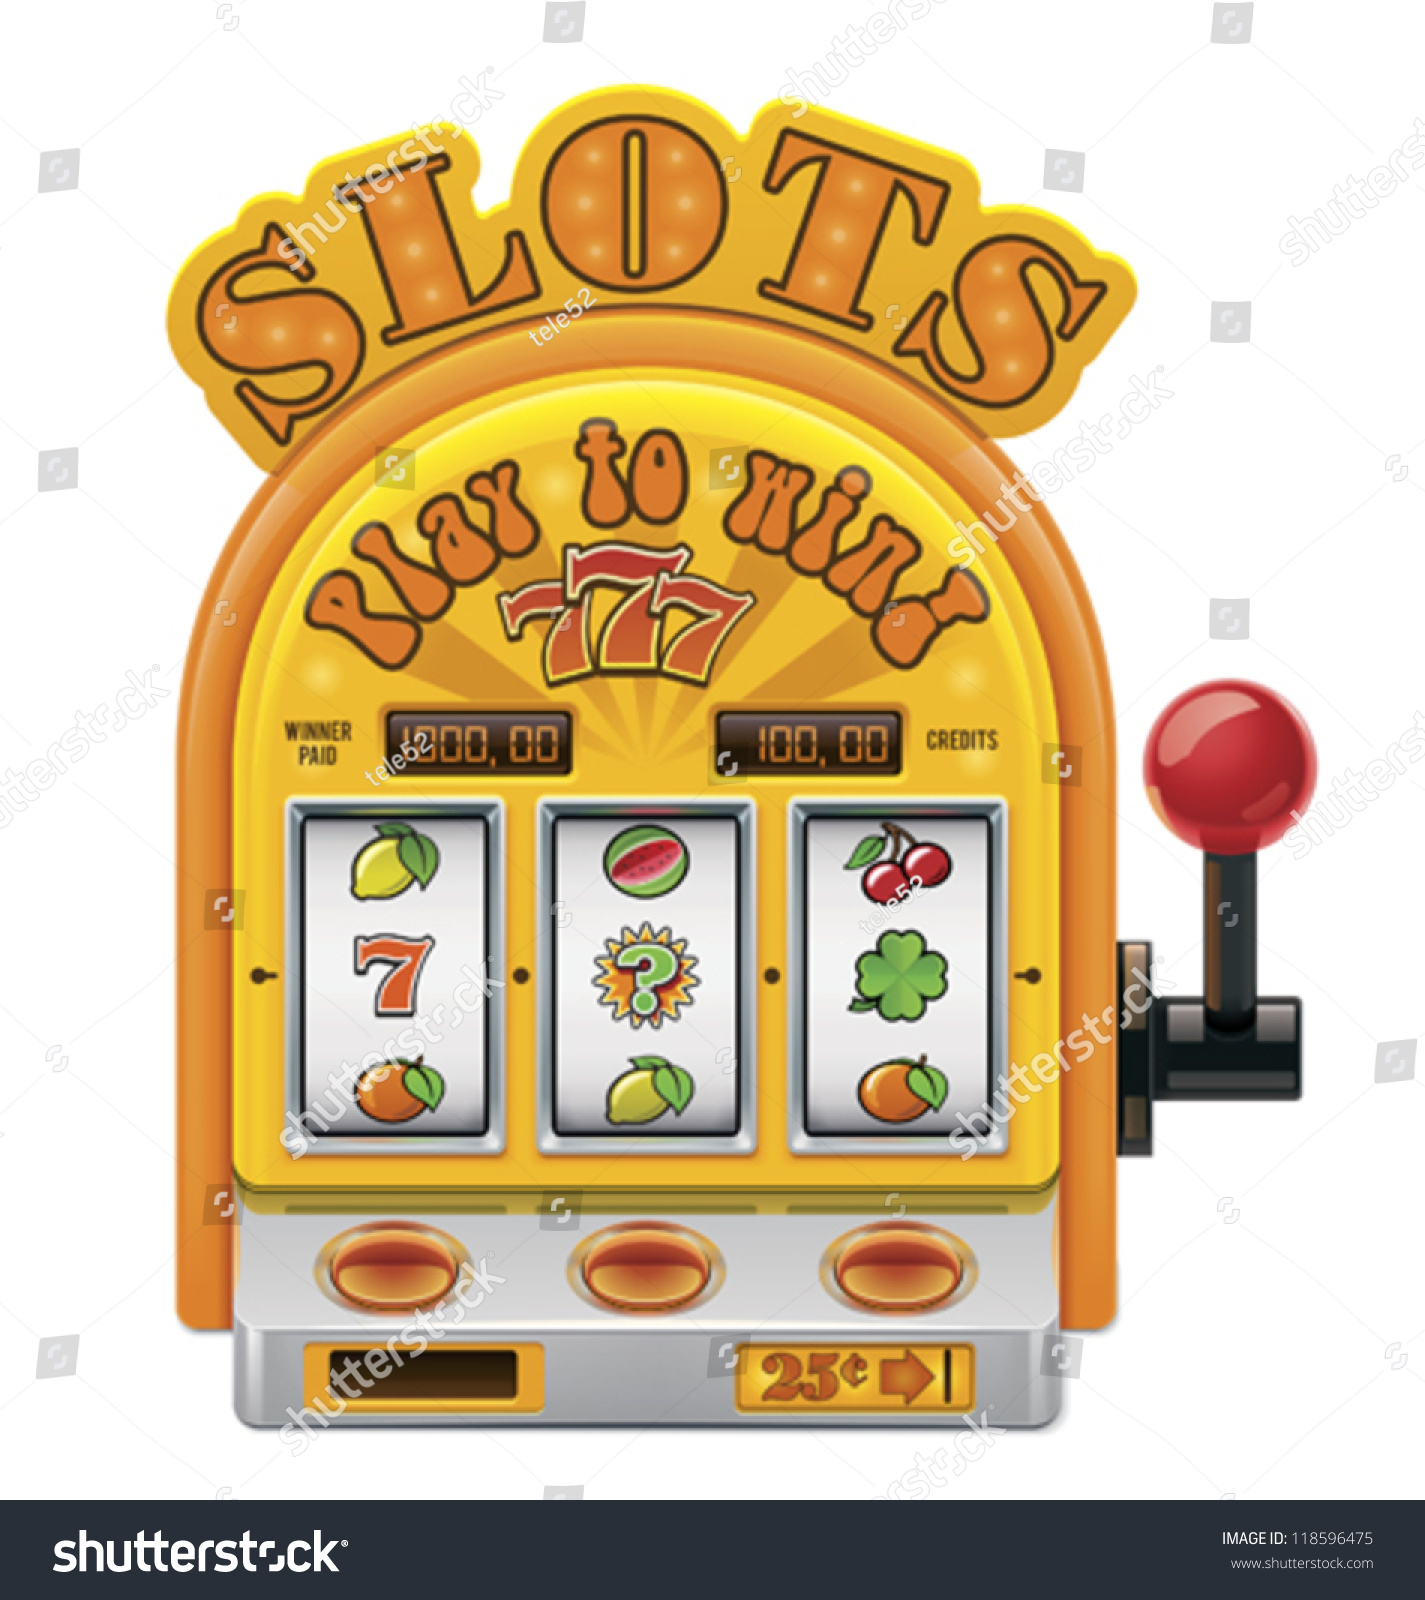 slot machine vector